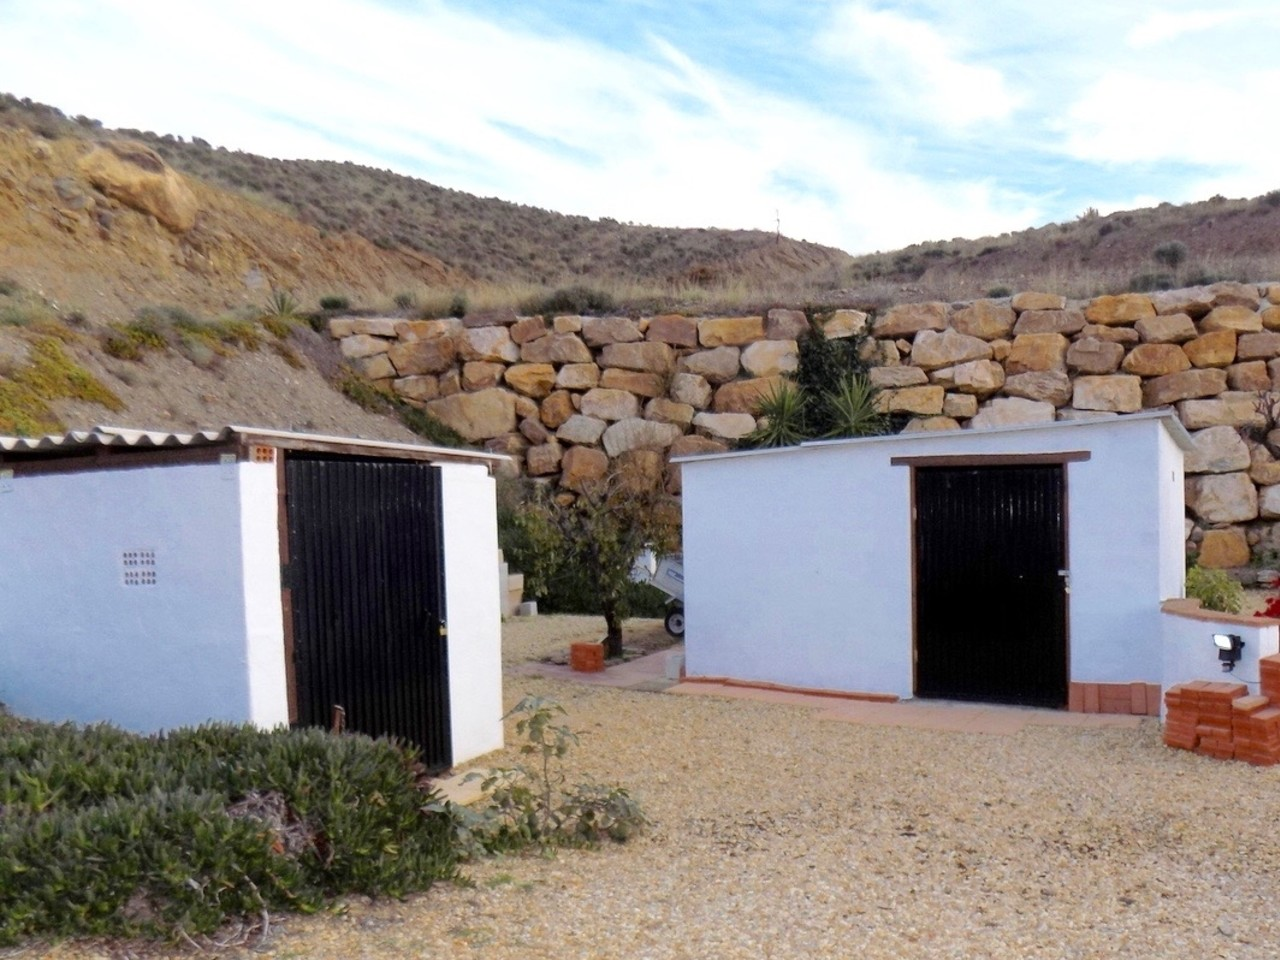 Propery For Sale in Huércal-Overa, Spain image 13